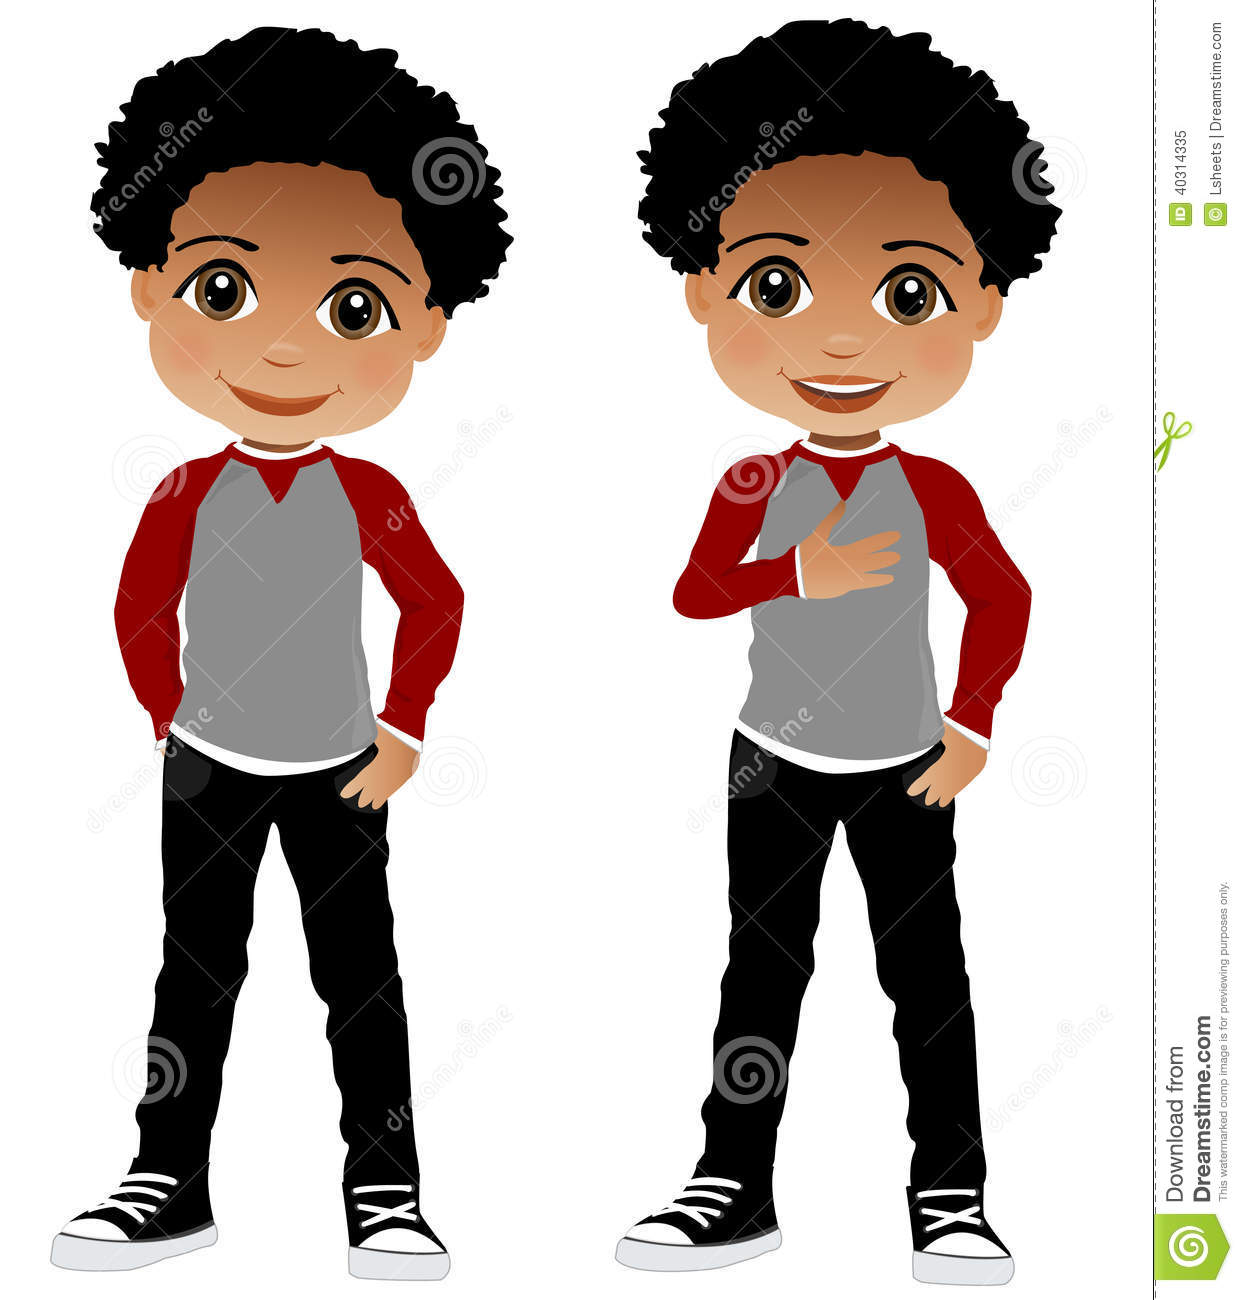 Black kids clipart 4 » Clipart Station.